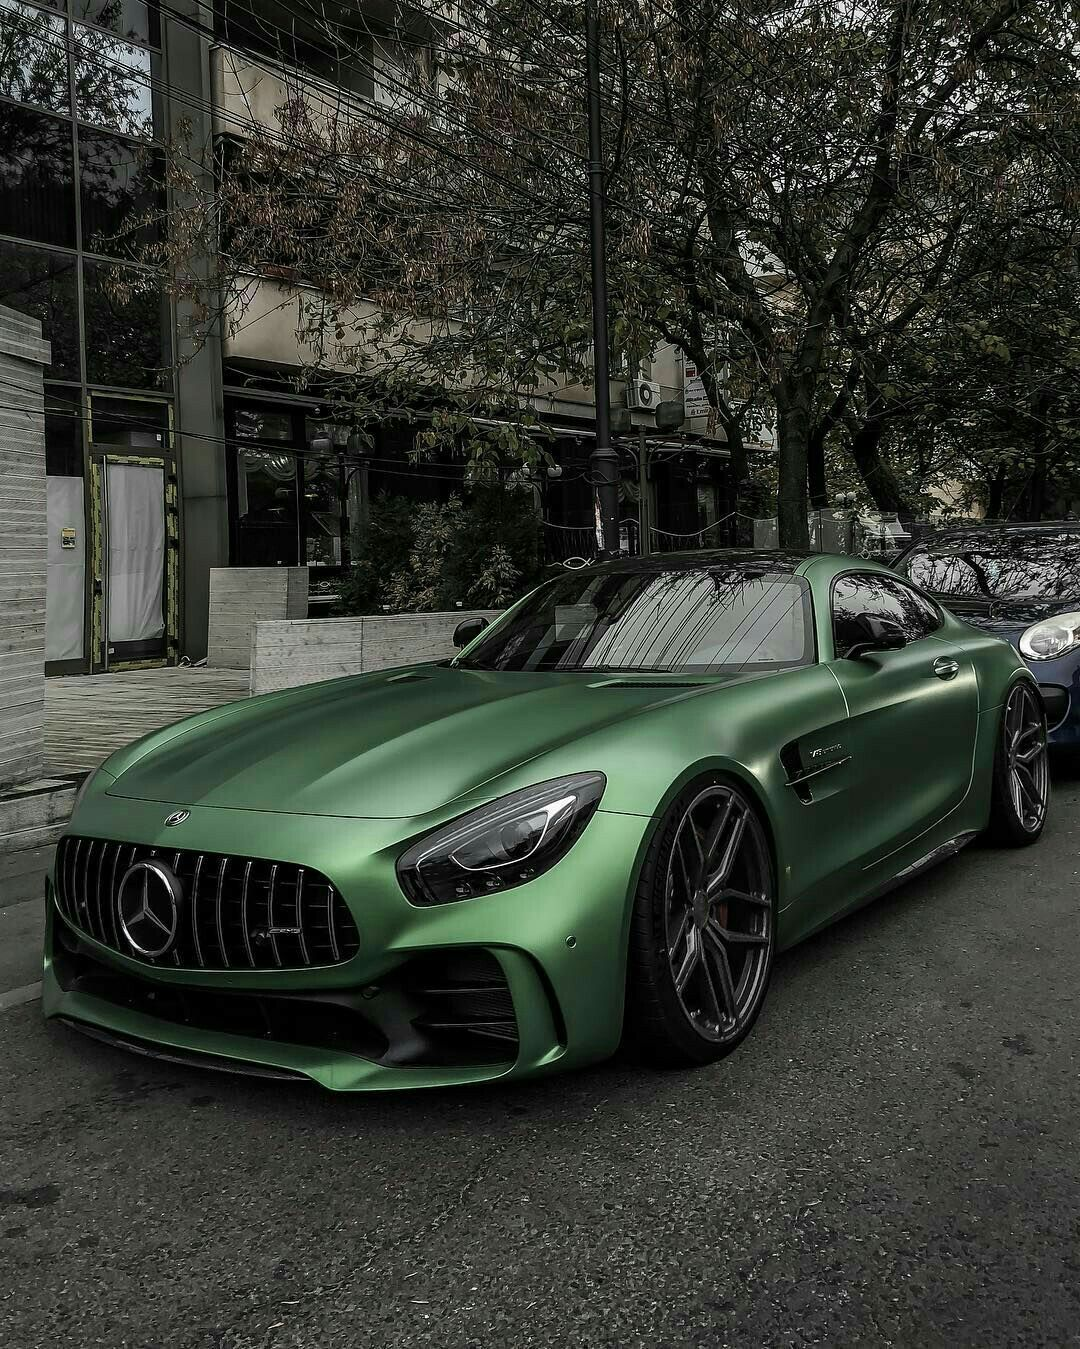 mercedes benz amg gtr z litwhips street toys cars pinterest mercedes benz benz and cars. Black Bedroom Furniture Sets. Home Design Ideas